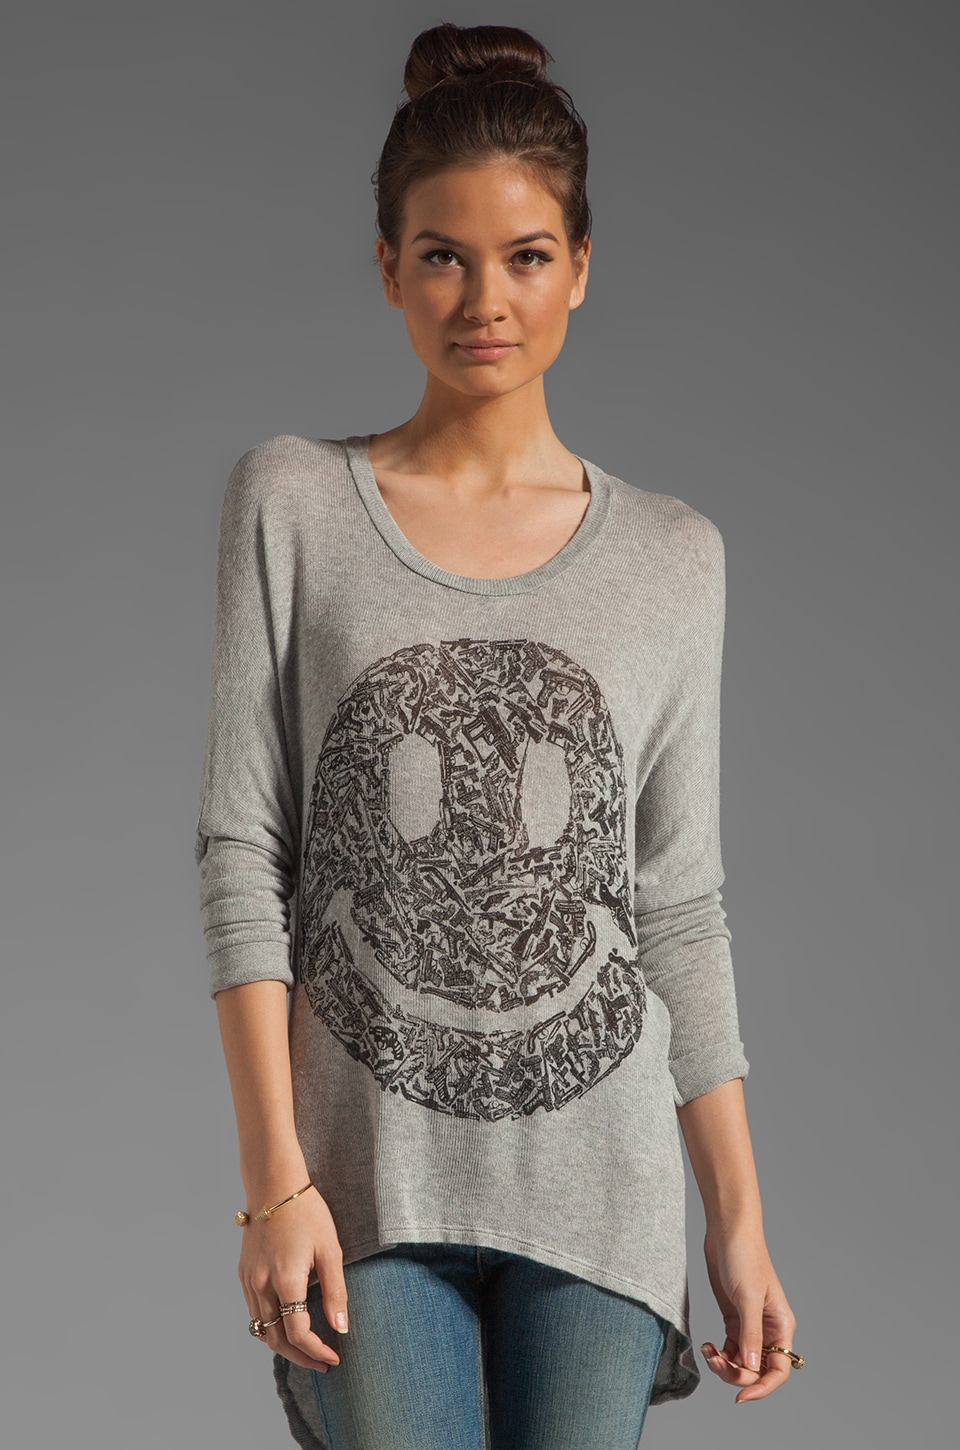 Lauren Moshi Reagan Gun Happyface Asymmetrical Hem Sweater in Heather Grey